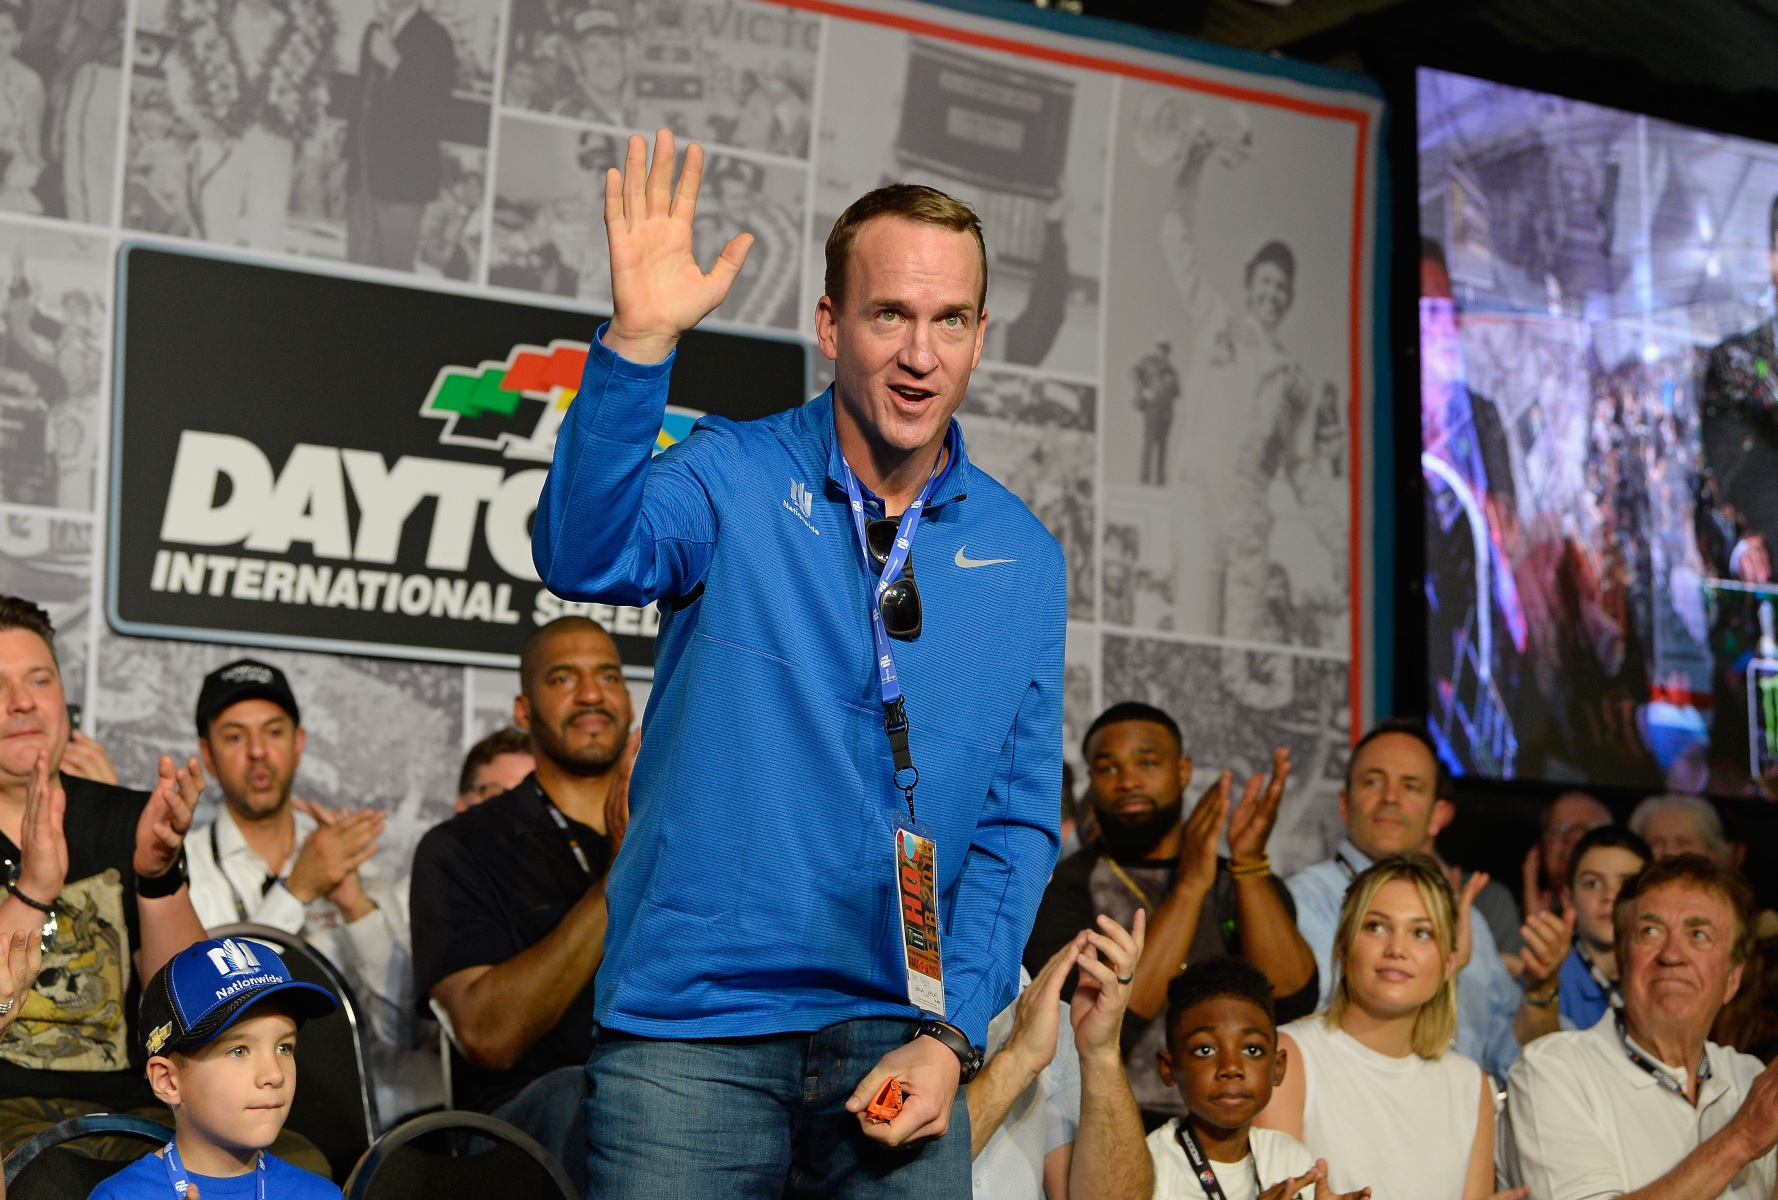 Peyton Manning waves to the crowd during the drivers meeting for the Monster Energy NASCAR Cup Series 60th Annual Daytona 500 at Daytona International Speedway on February 18, 2018 in Daytona Beach, Florida.  (Photo by Robert Laberge/Getty Images)